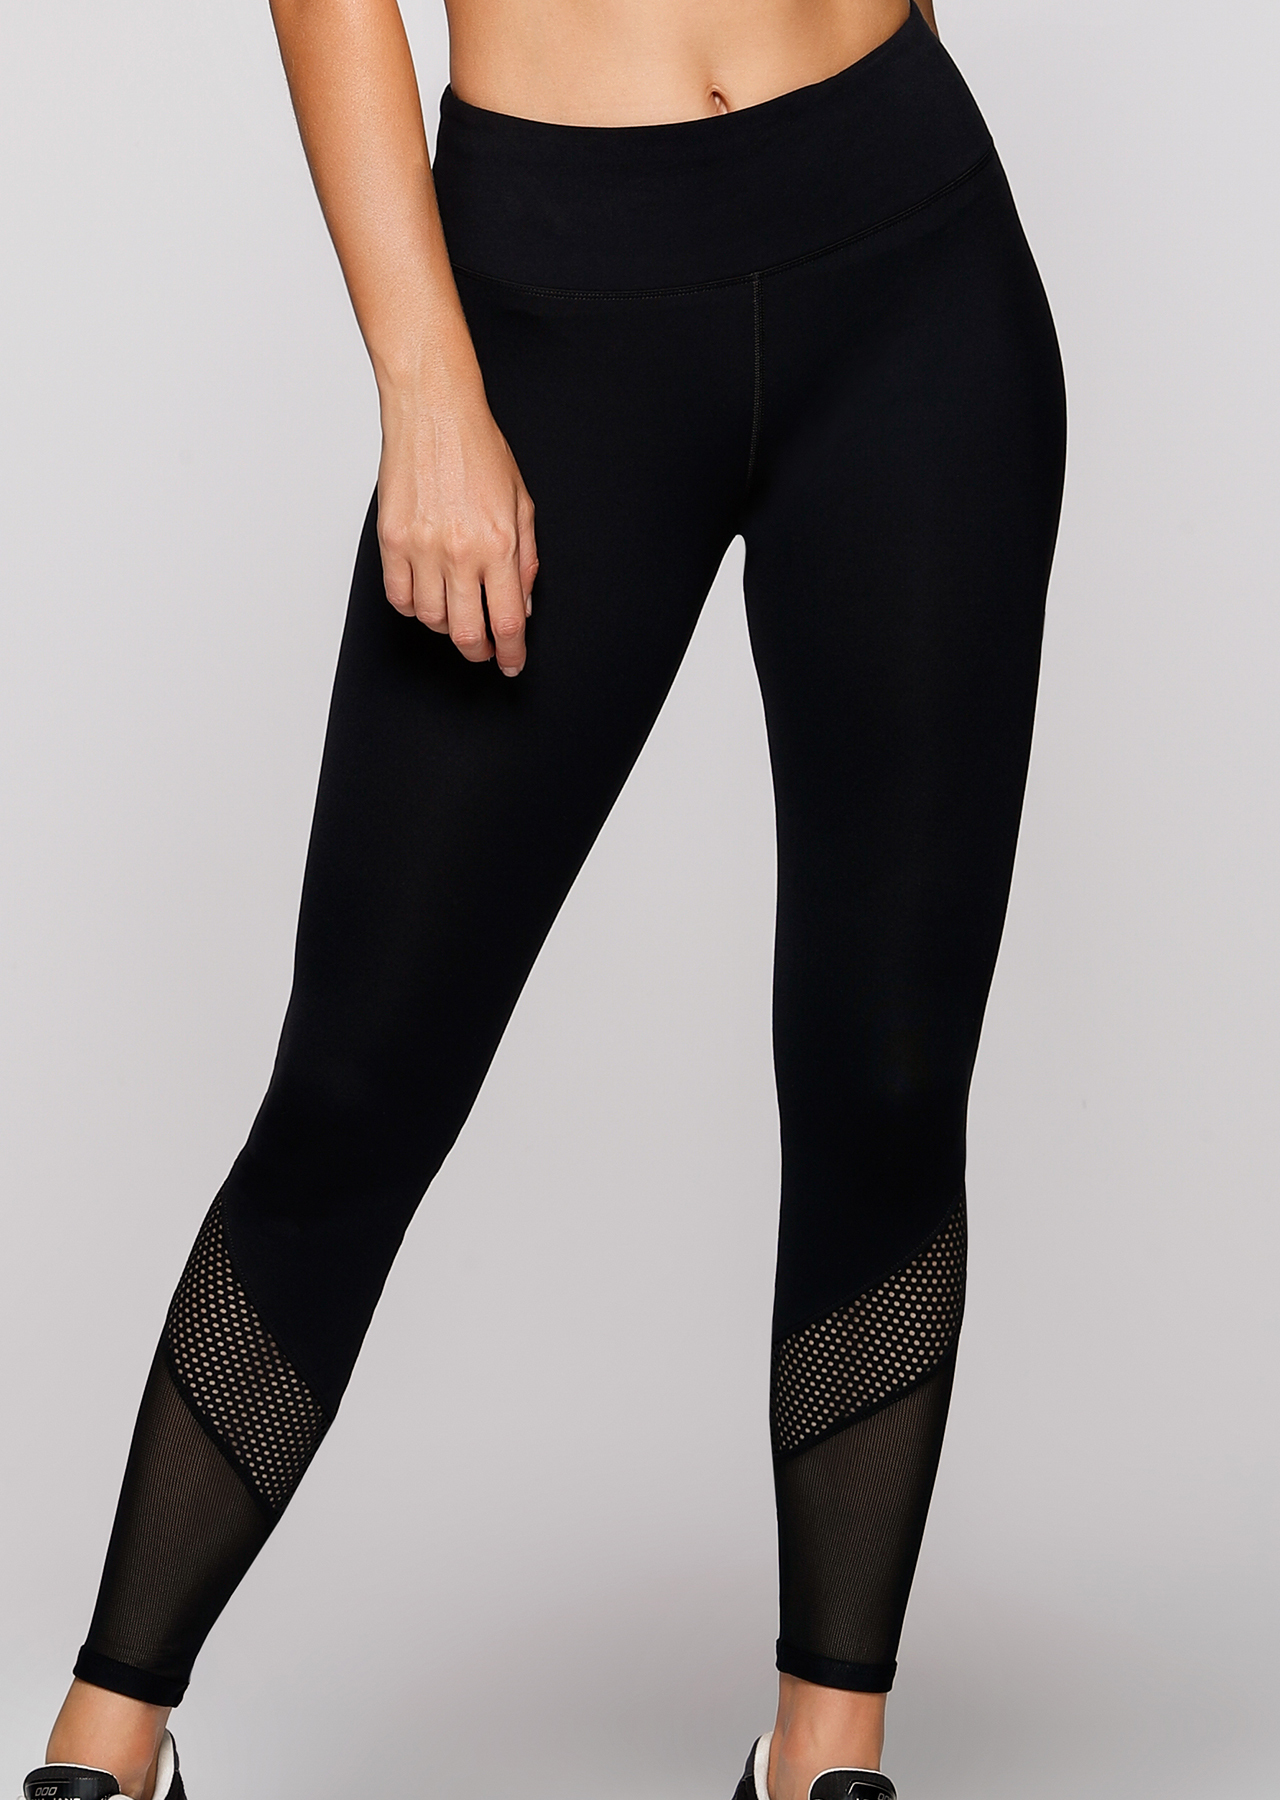 Reviews Of 14 Yoga Pants That Feel As Good As They Look ...